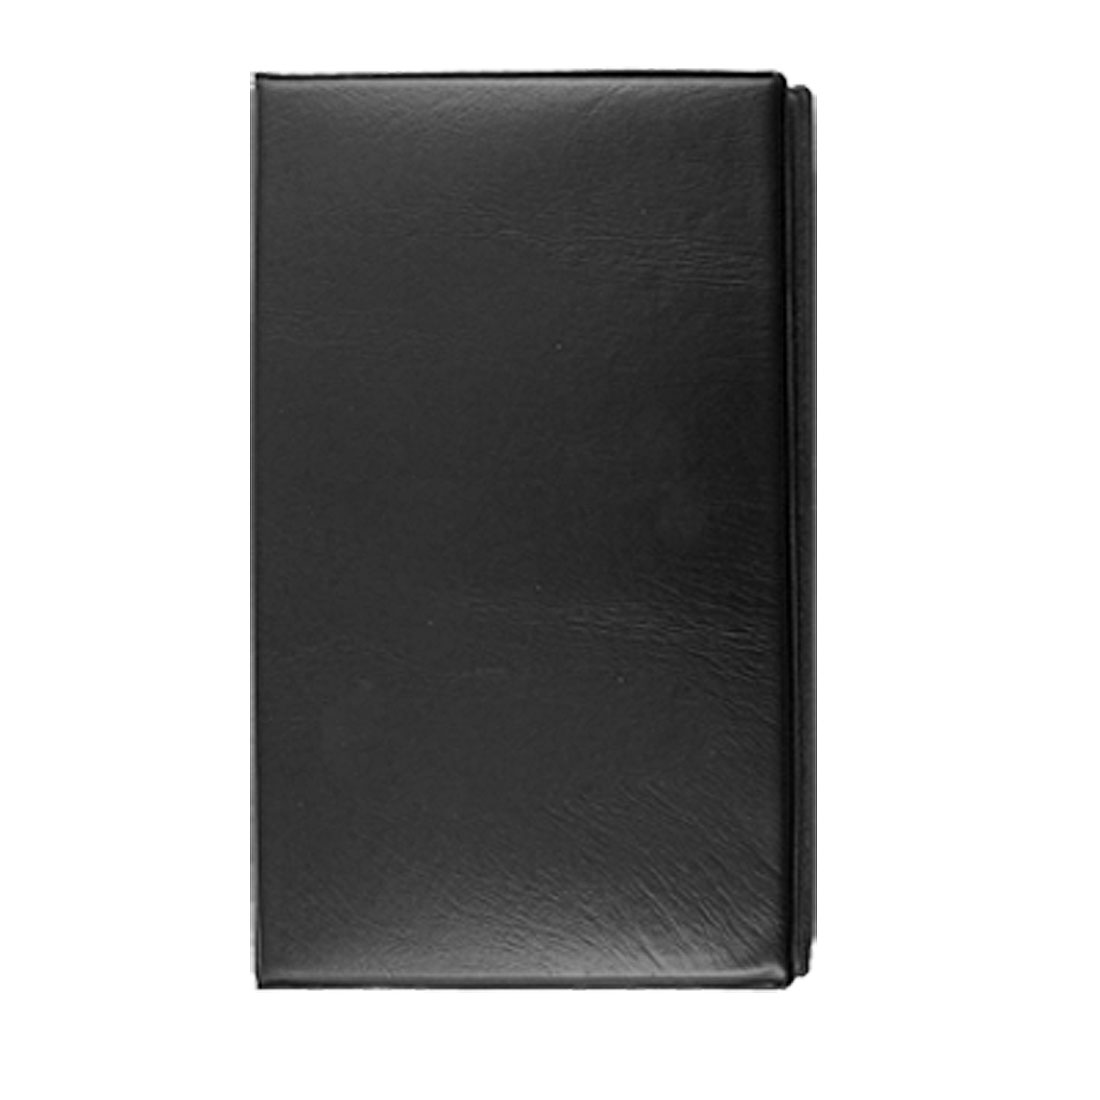 Notebook Style 144PCS Capacity Blk Business Card Holder